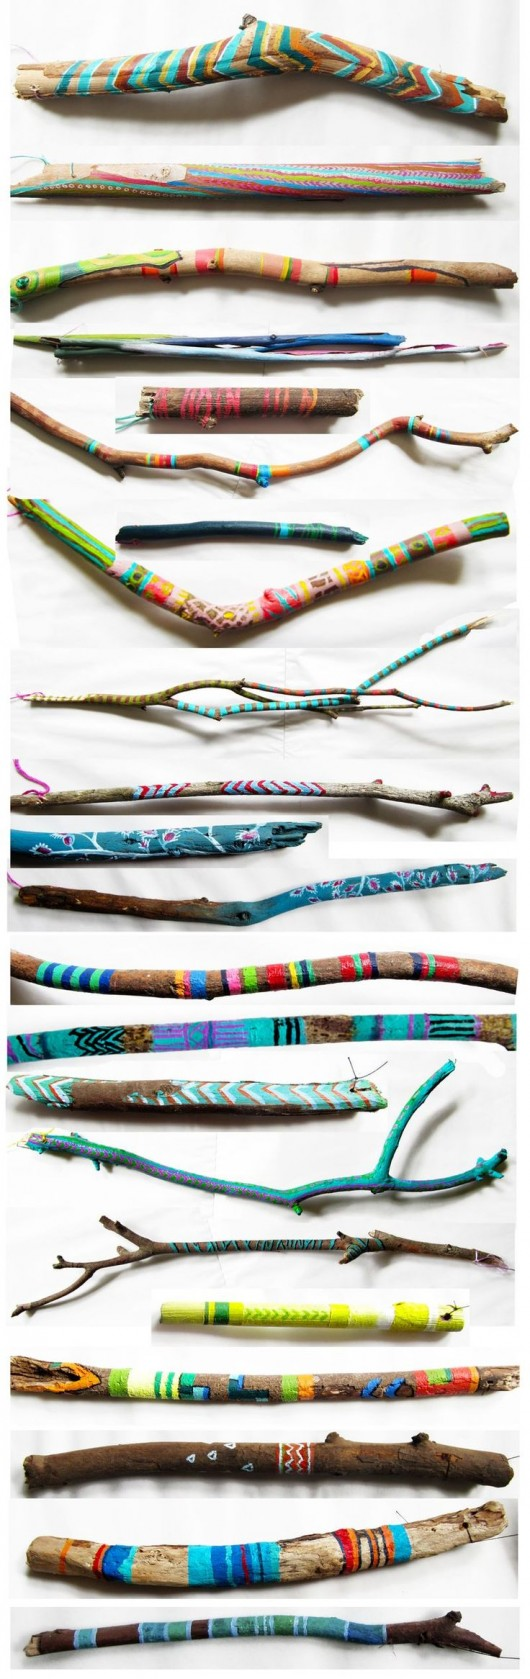 15 DIY Nature Craft Ideas for Kids